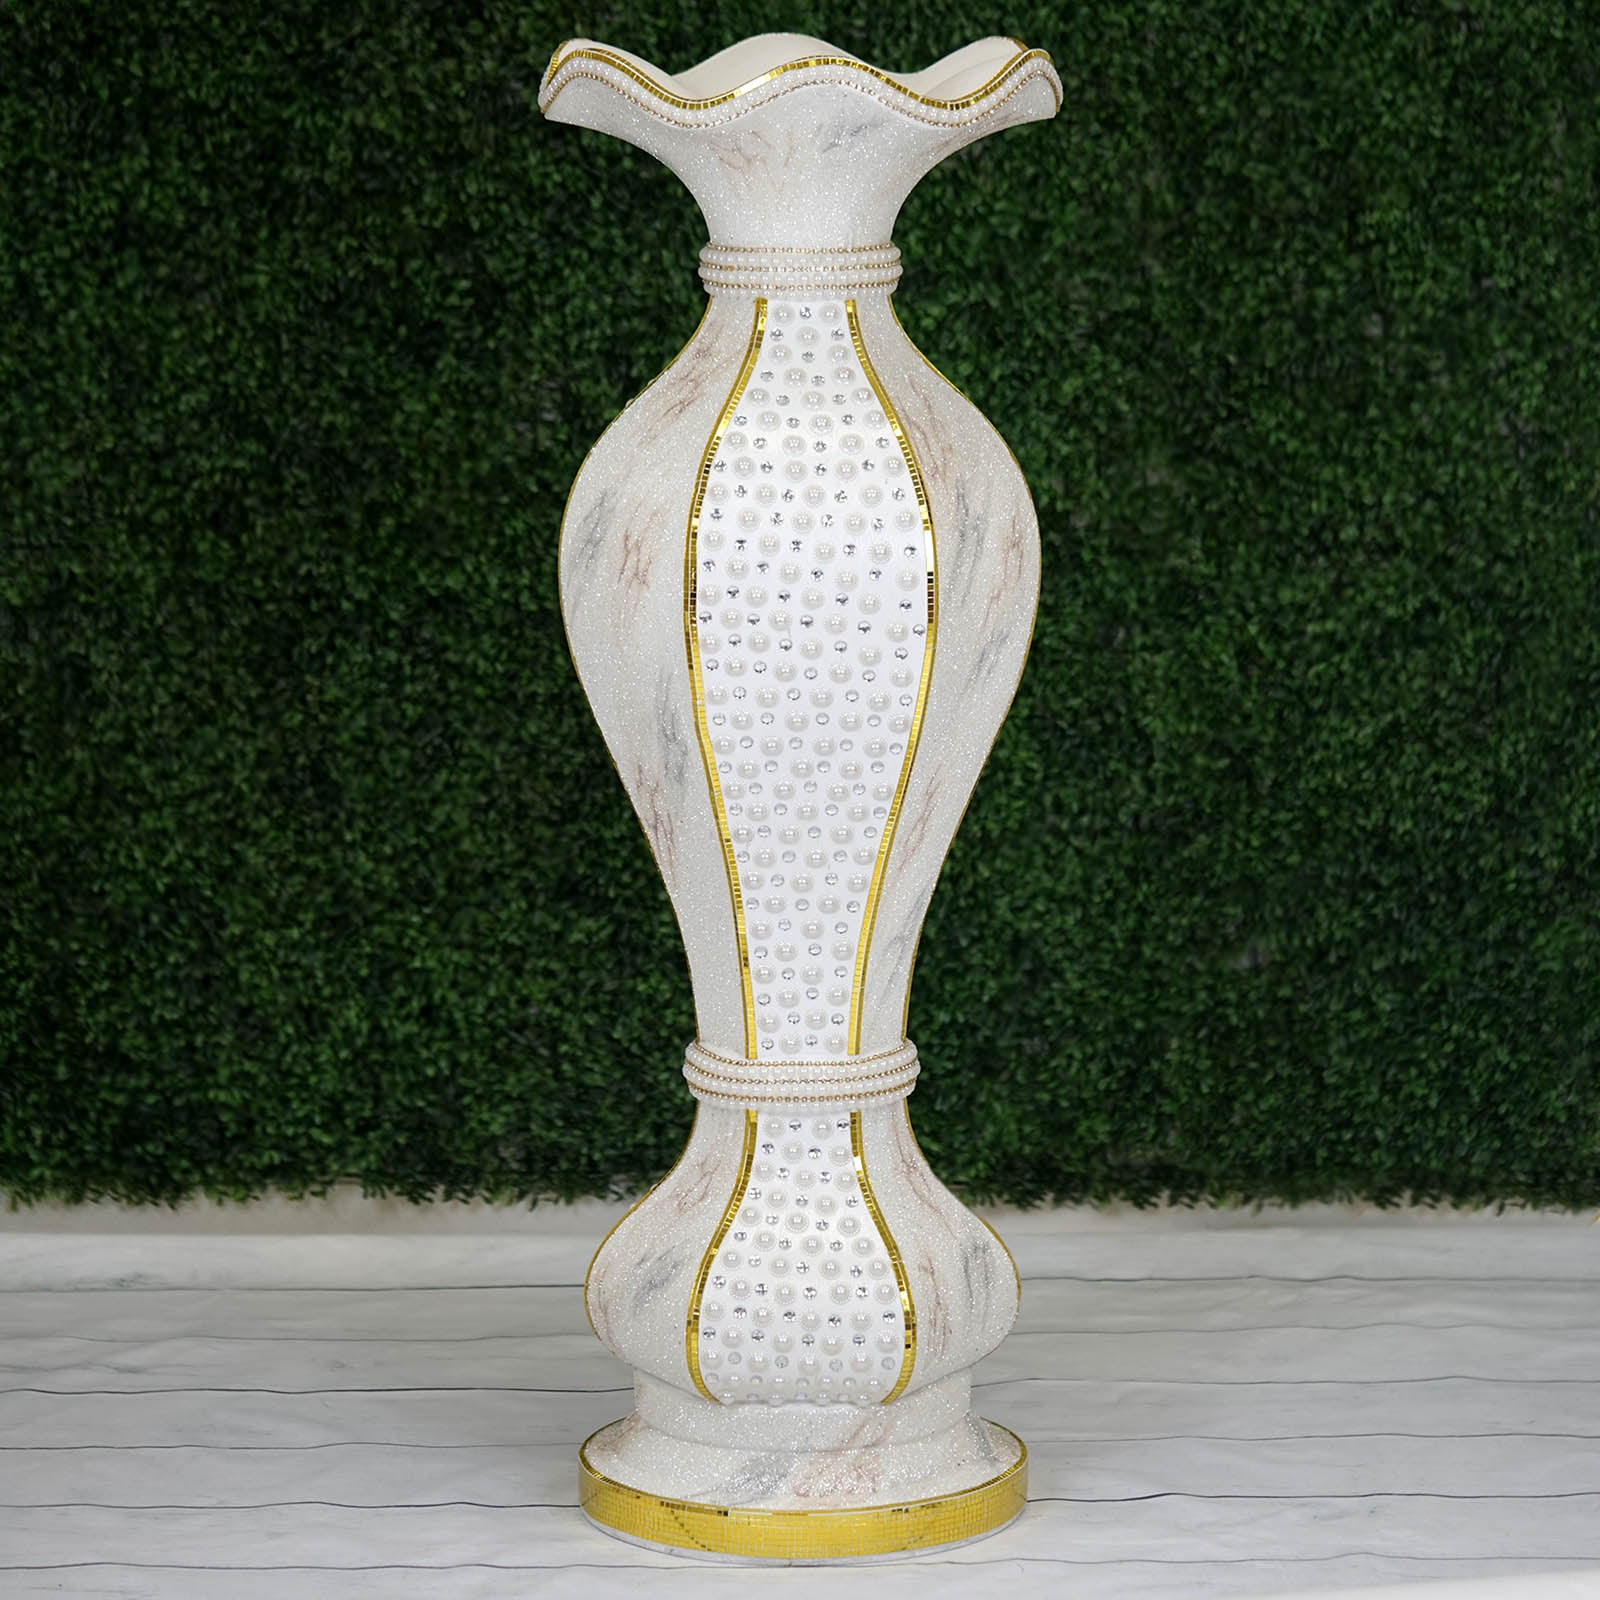 475 Shimmering Gold Glittered Marble Design Floor Flower Pot Vase